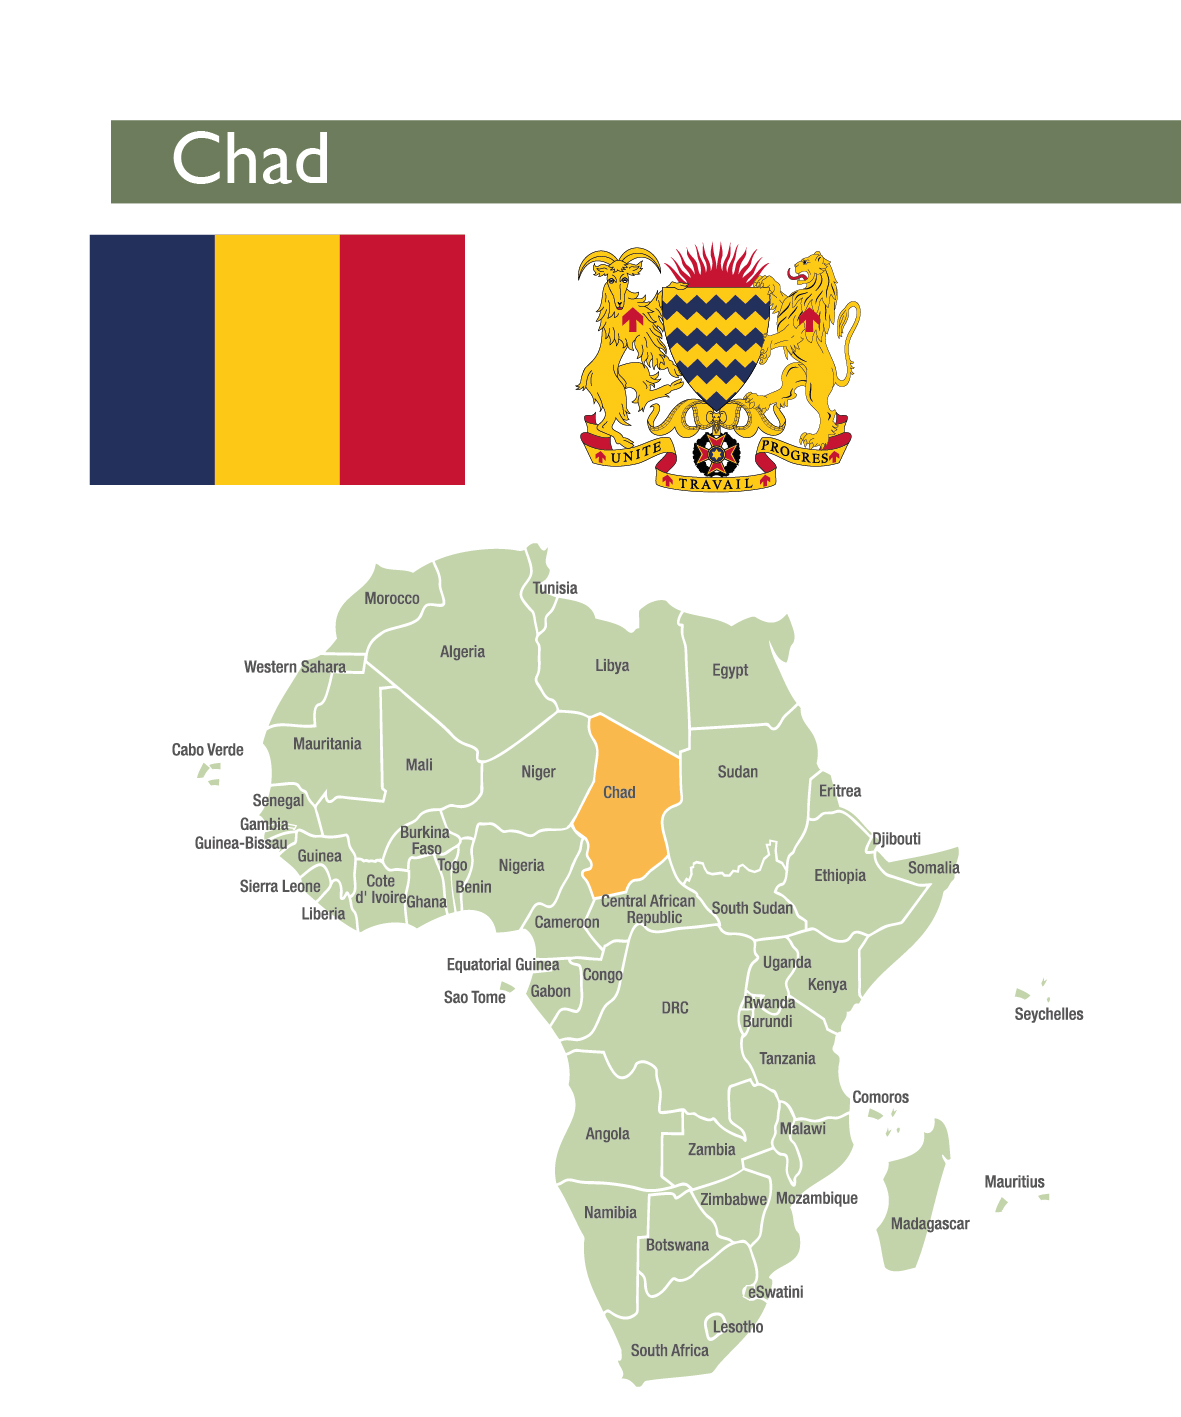 chad staff monitored program african dept international monetary fund